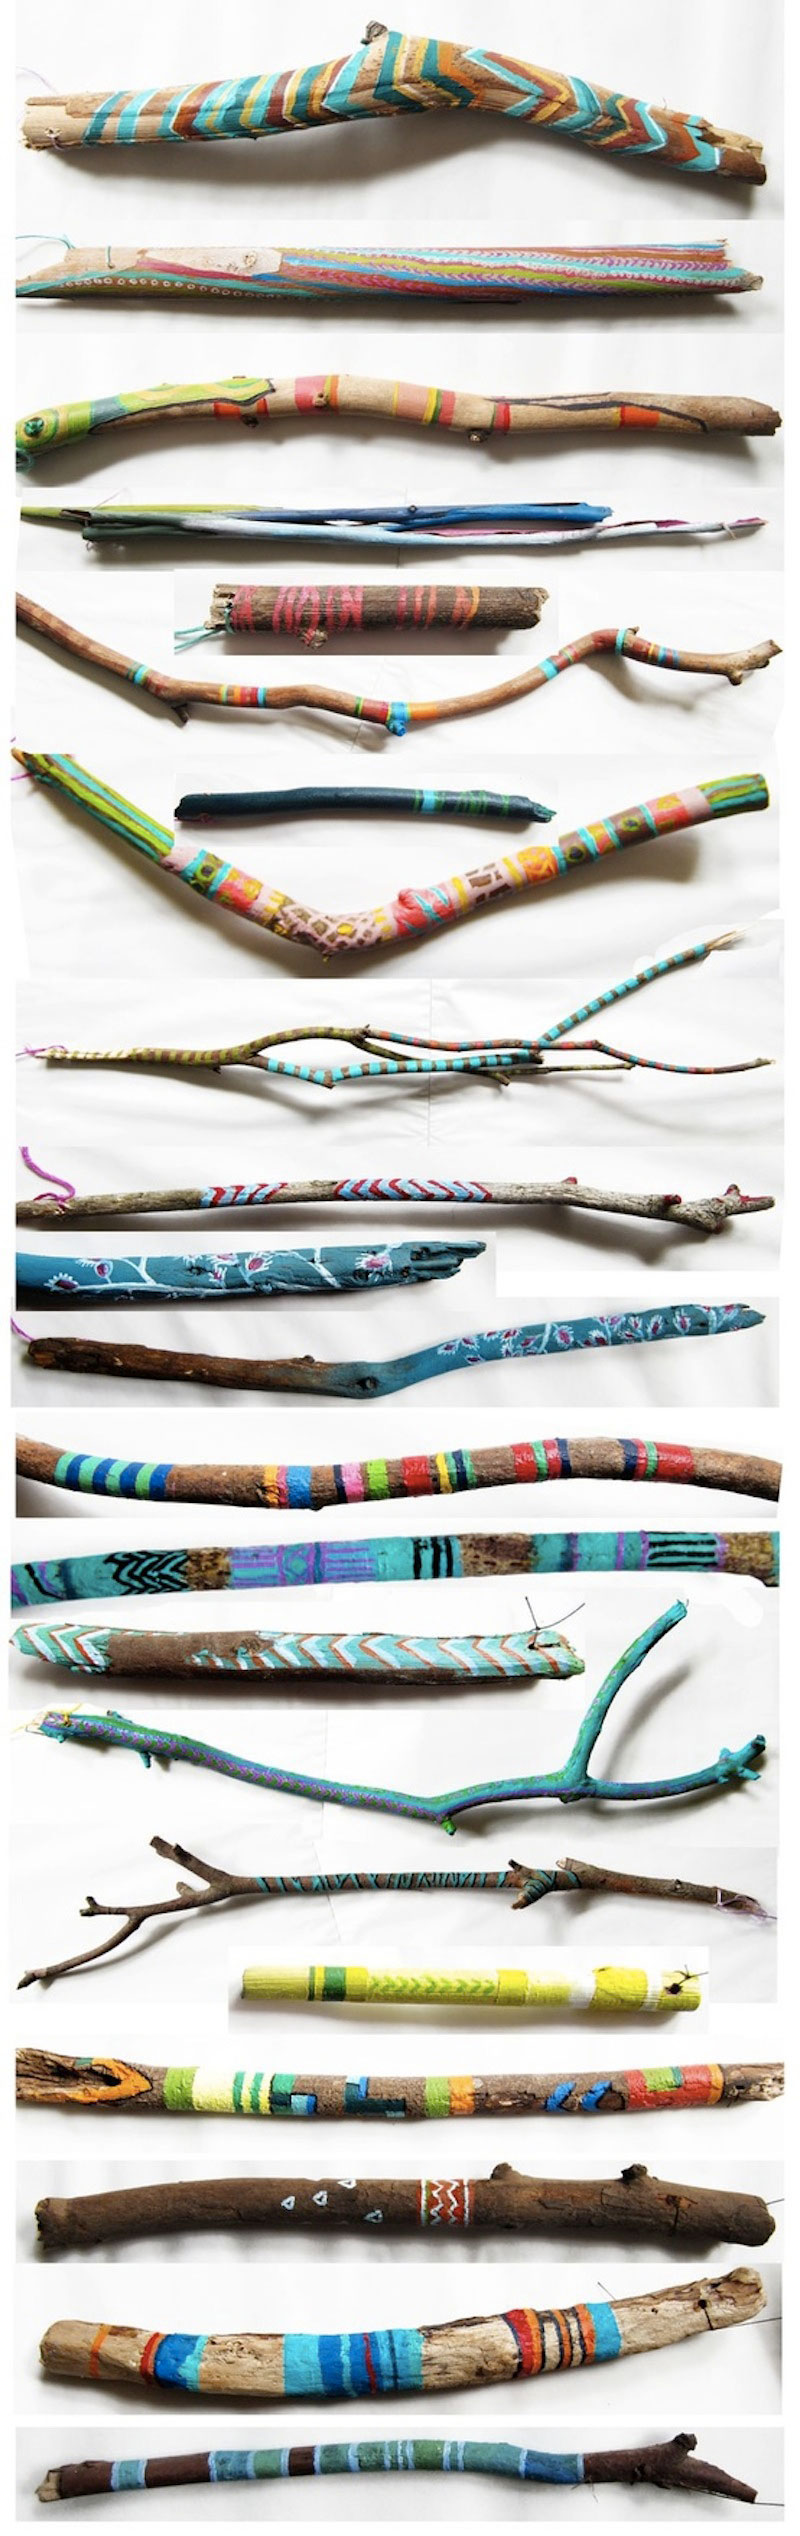 Refried-hippie-DIY-painted-sticks